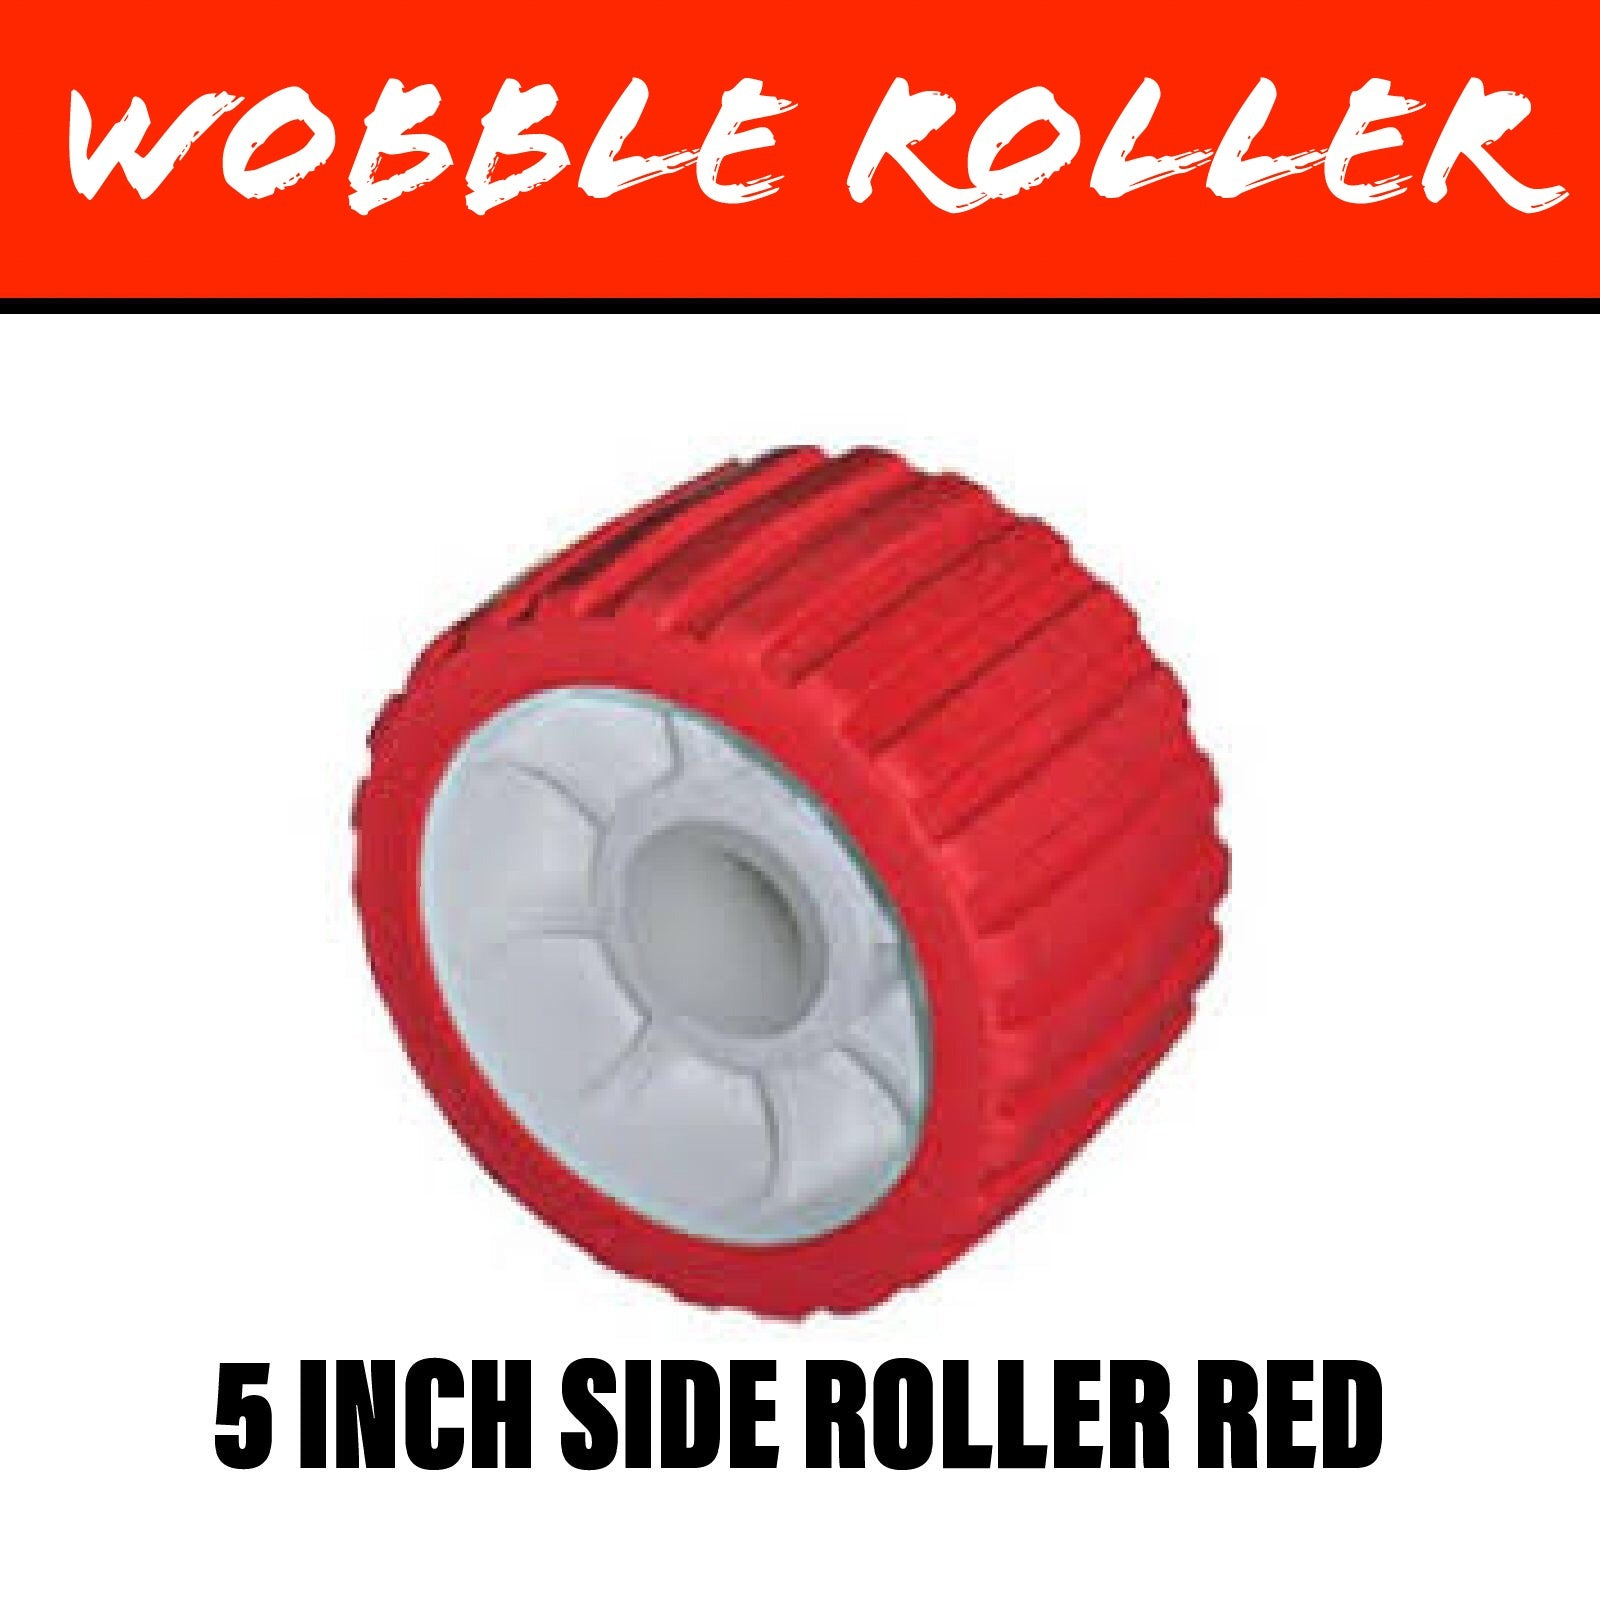 5 INCH RED Wobble Roller 26MM Bore